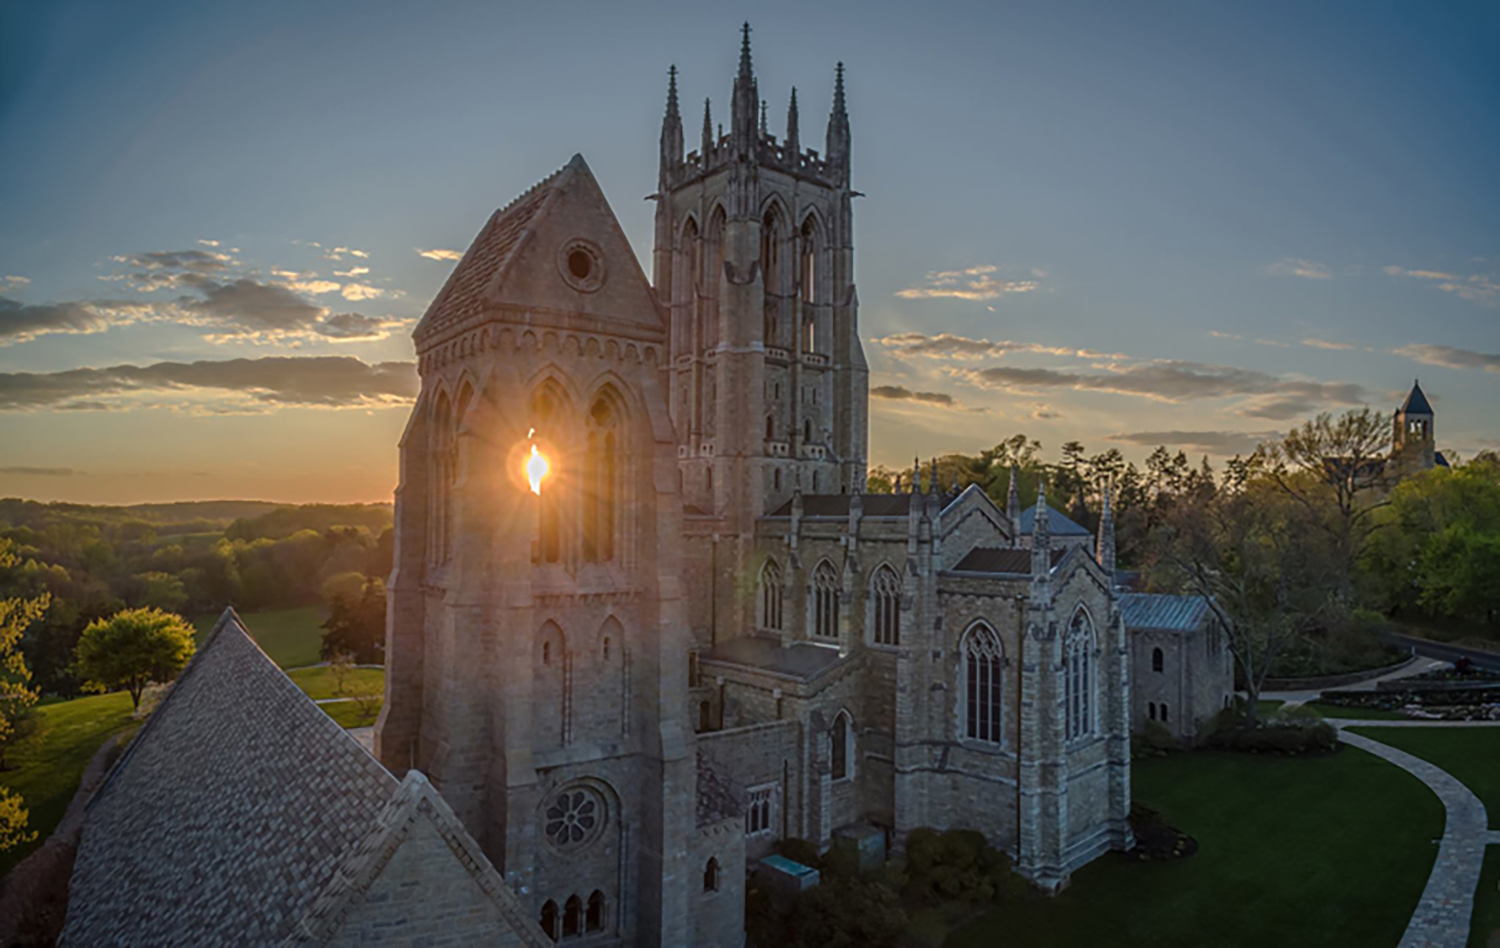 Figure 3: Aerial view of Bryn Athyn Cathedral. Photograph by Brent Schnarr.